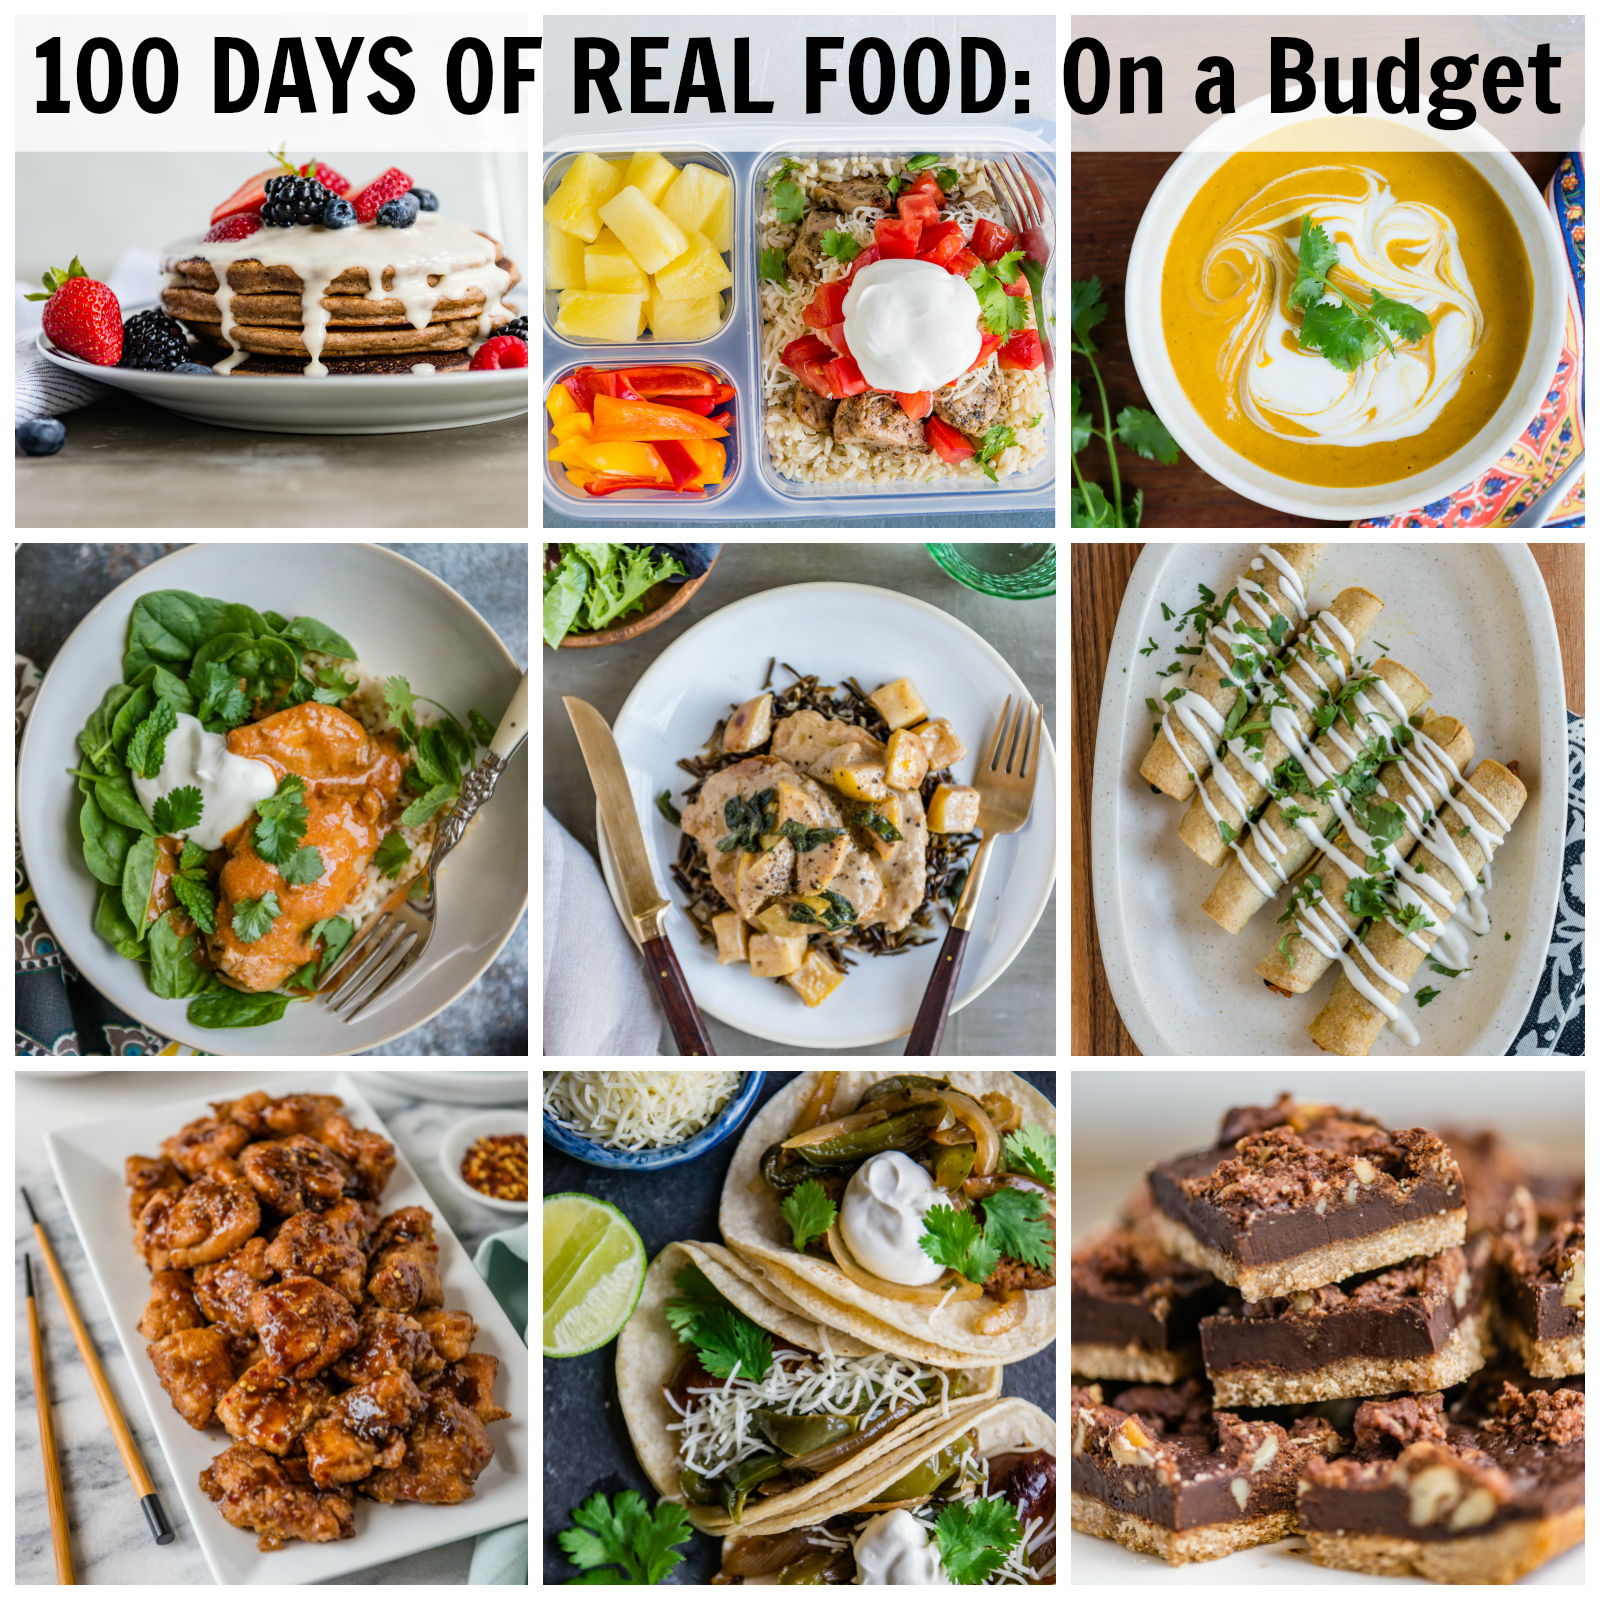 100 Days of Real Food on a Budget Cookbook